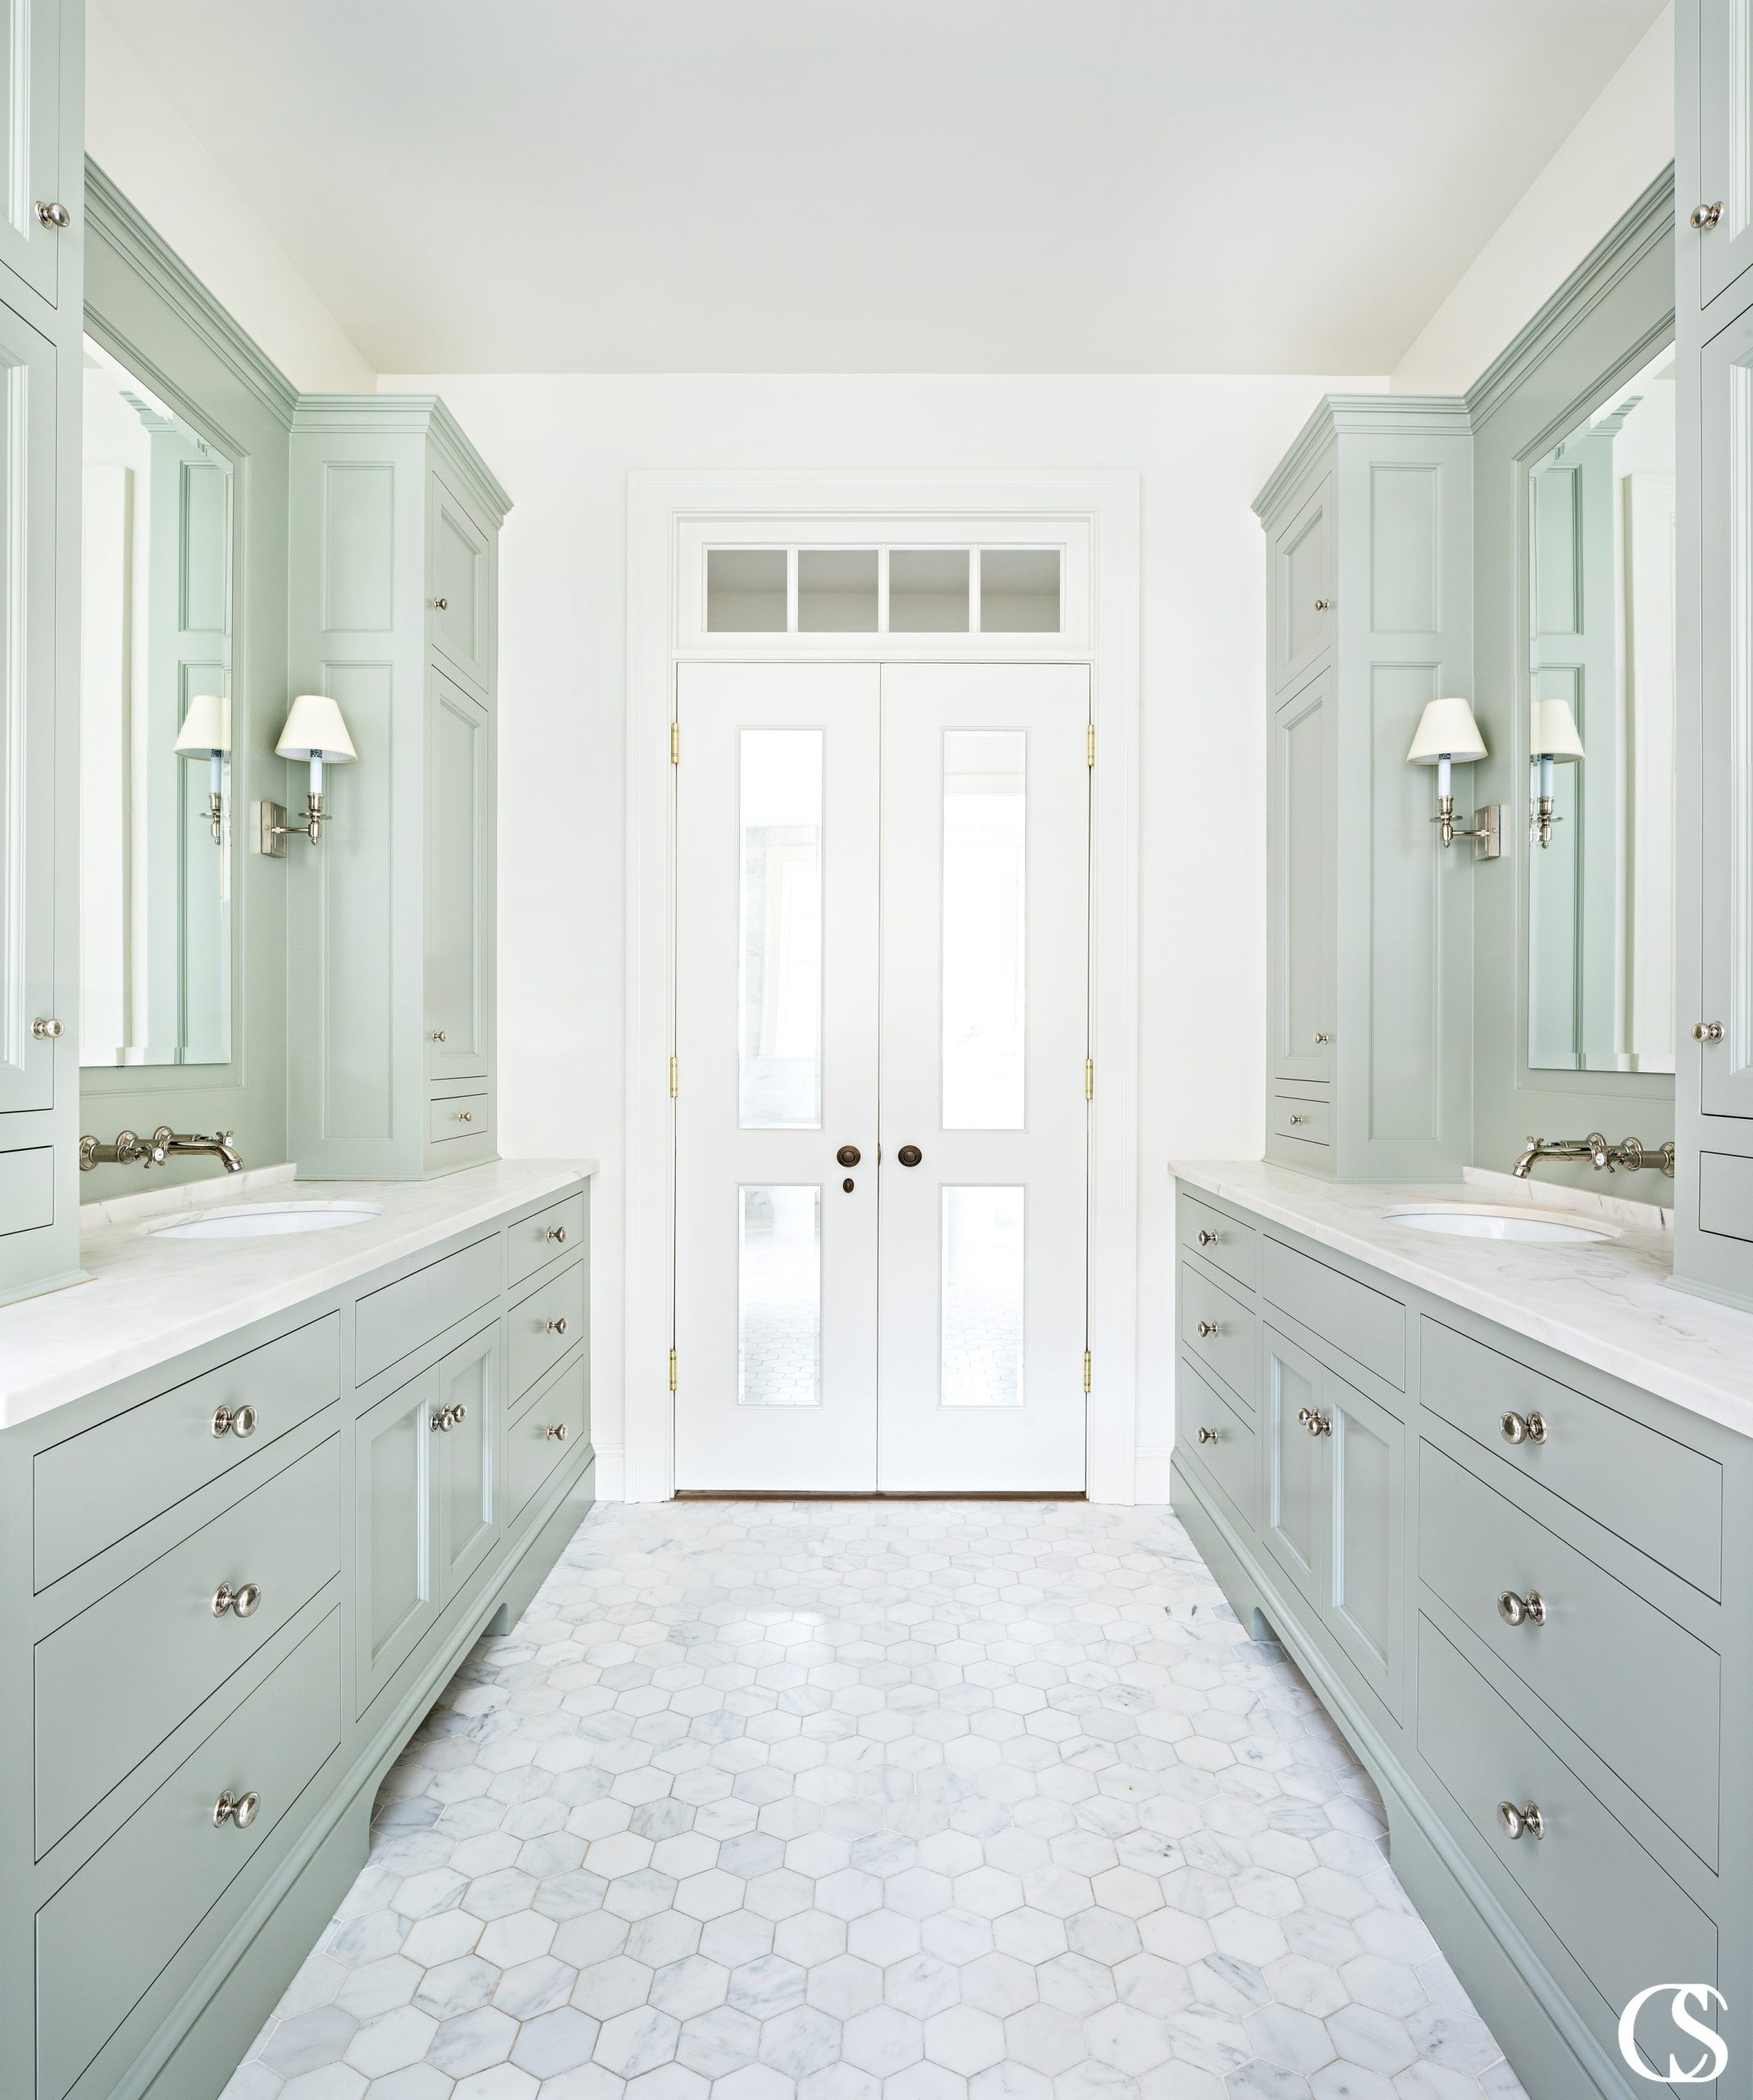 A common misconception with bathroom vanity cabinets is that a vanity is all one cabinet. But you can see with this unique bathroom cabinet design and color, a vanity can be almost any configuration that fits your space and needs.